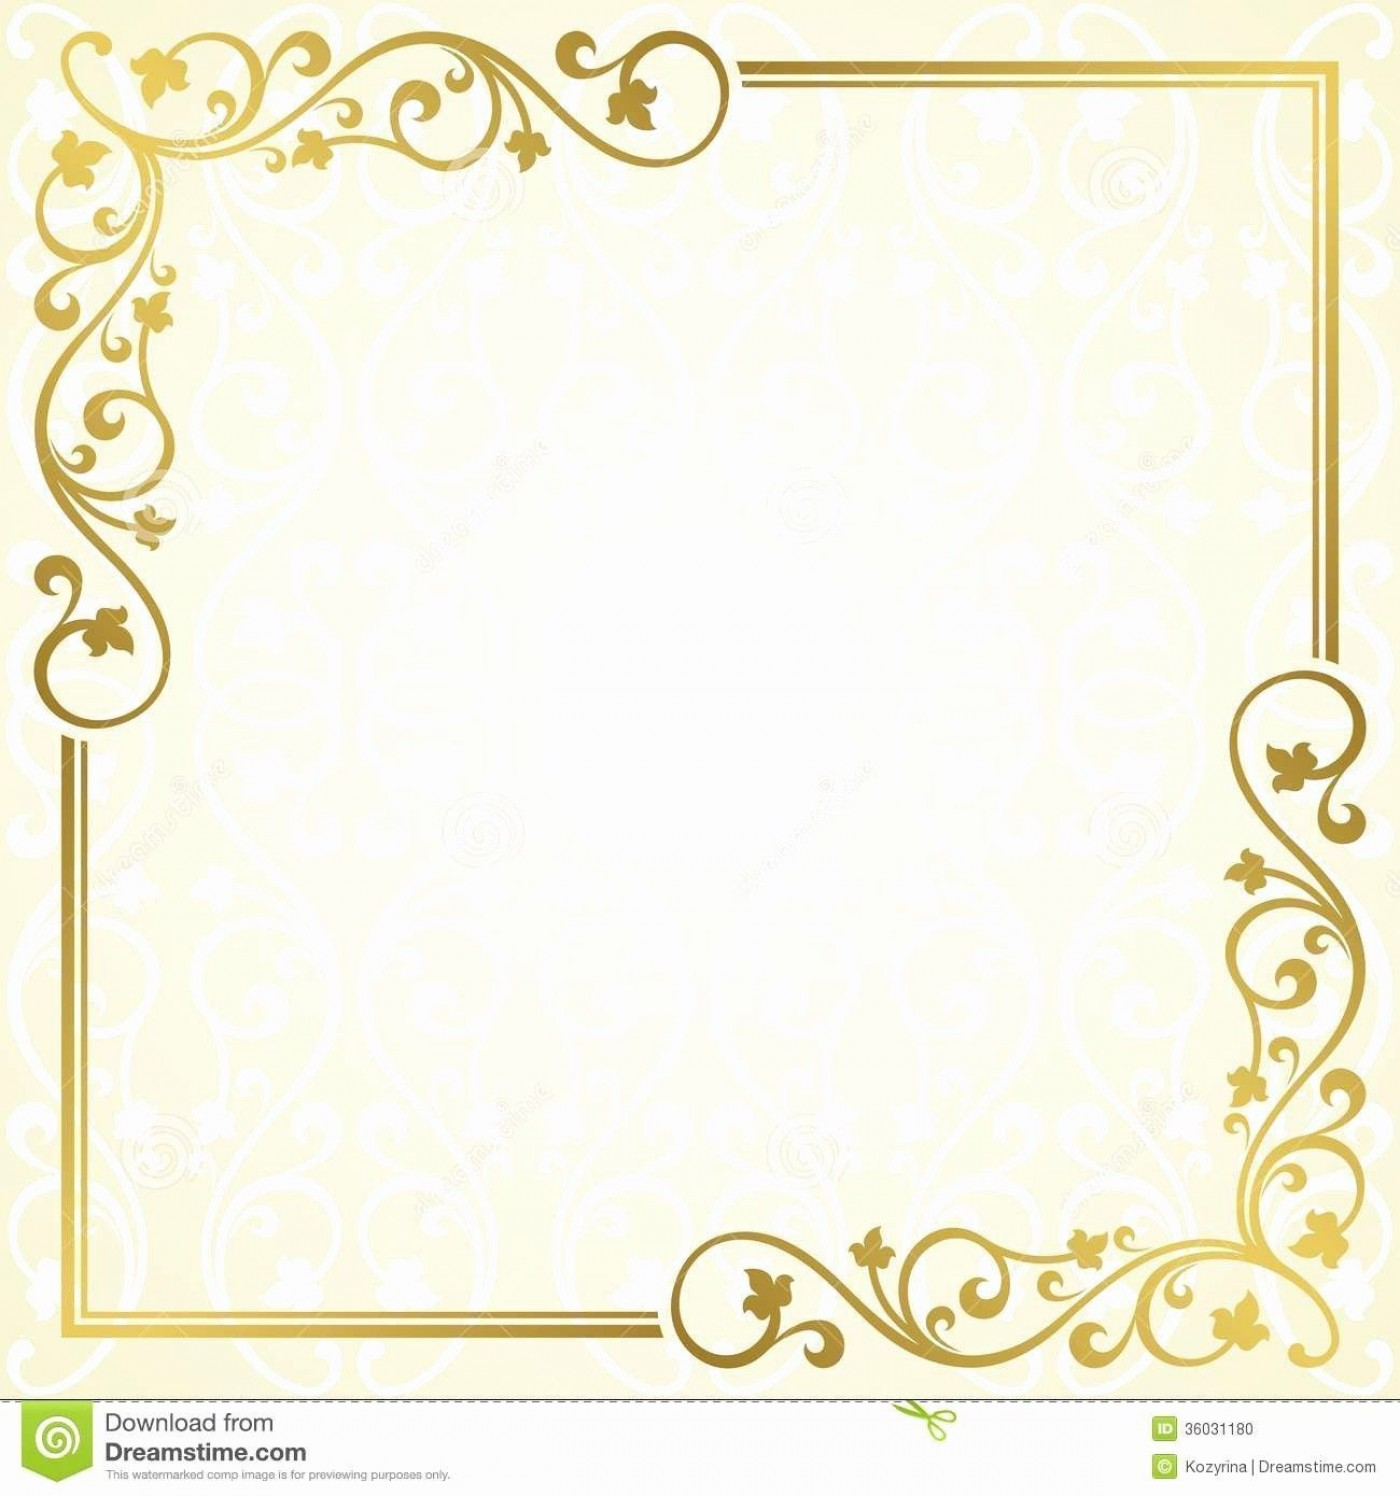 004 Remarkable Free Download Invitation Card Template Design  Wedding Software For Pc Psd1400